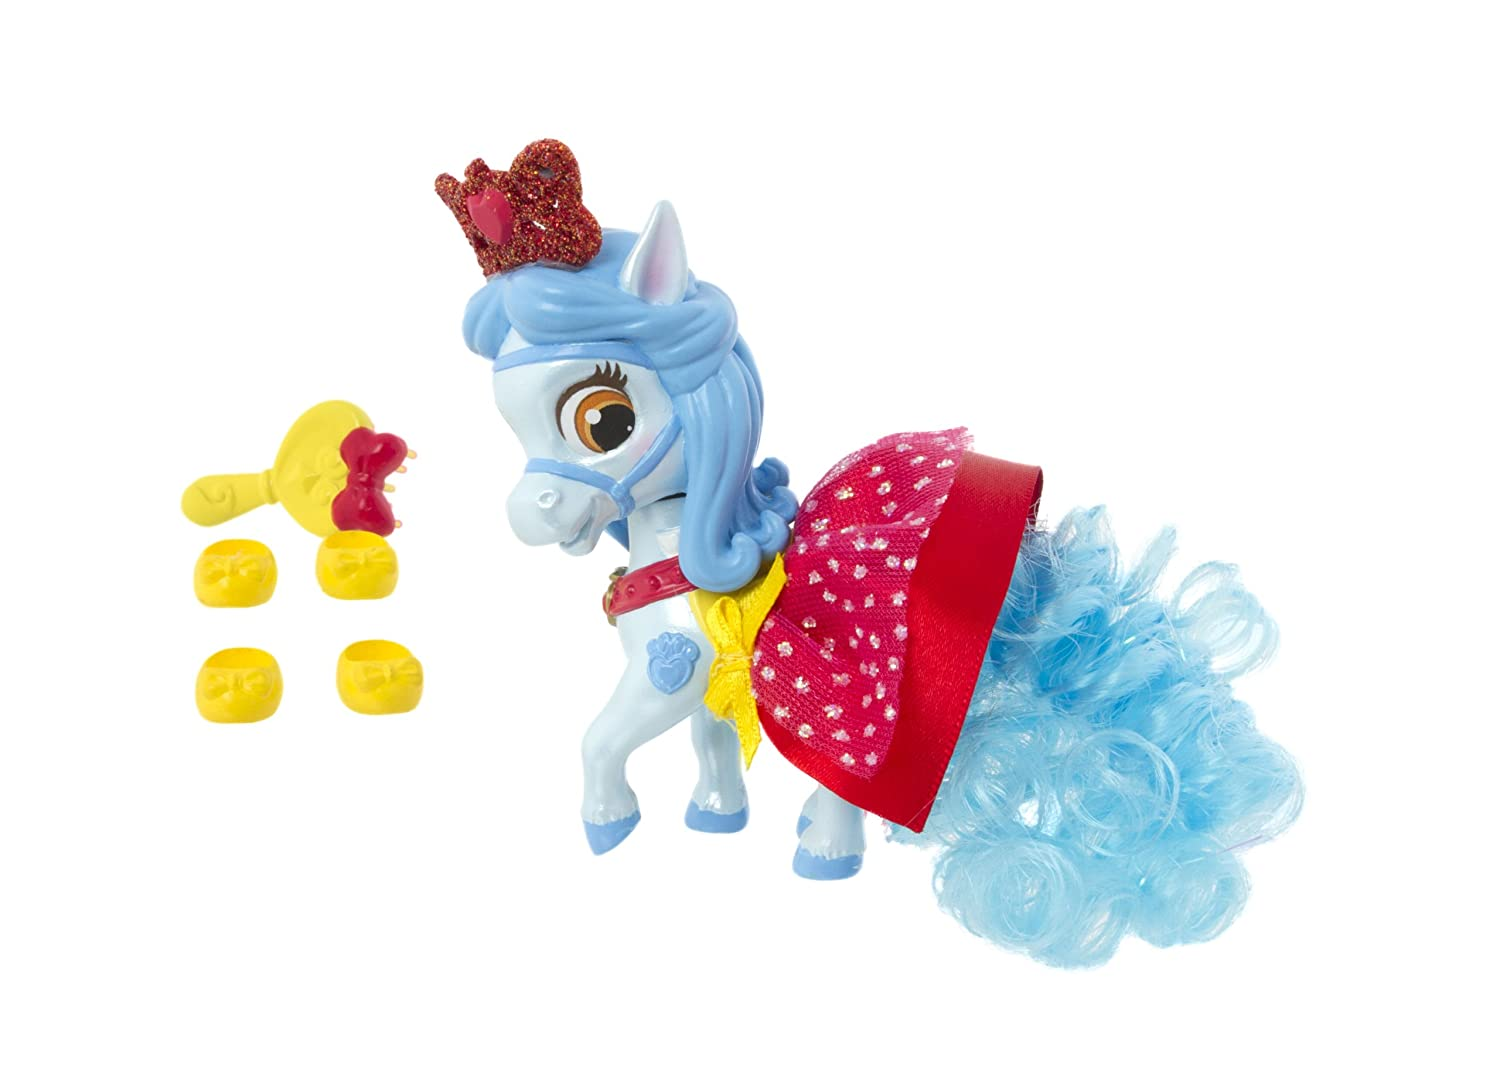 Disney Princess, Palace Pets, Primp & Pamper Ponies, Snow Weiß's Sweetie by Disney Princess